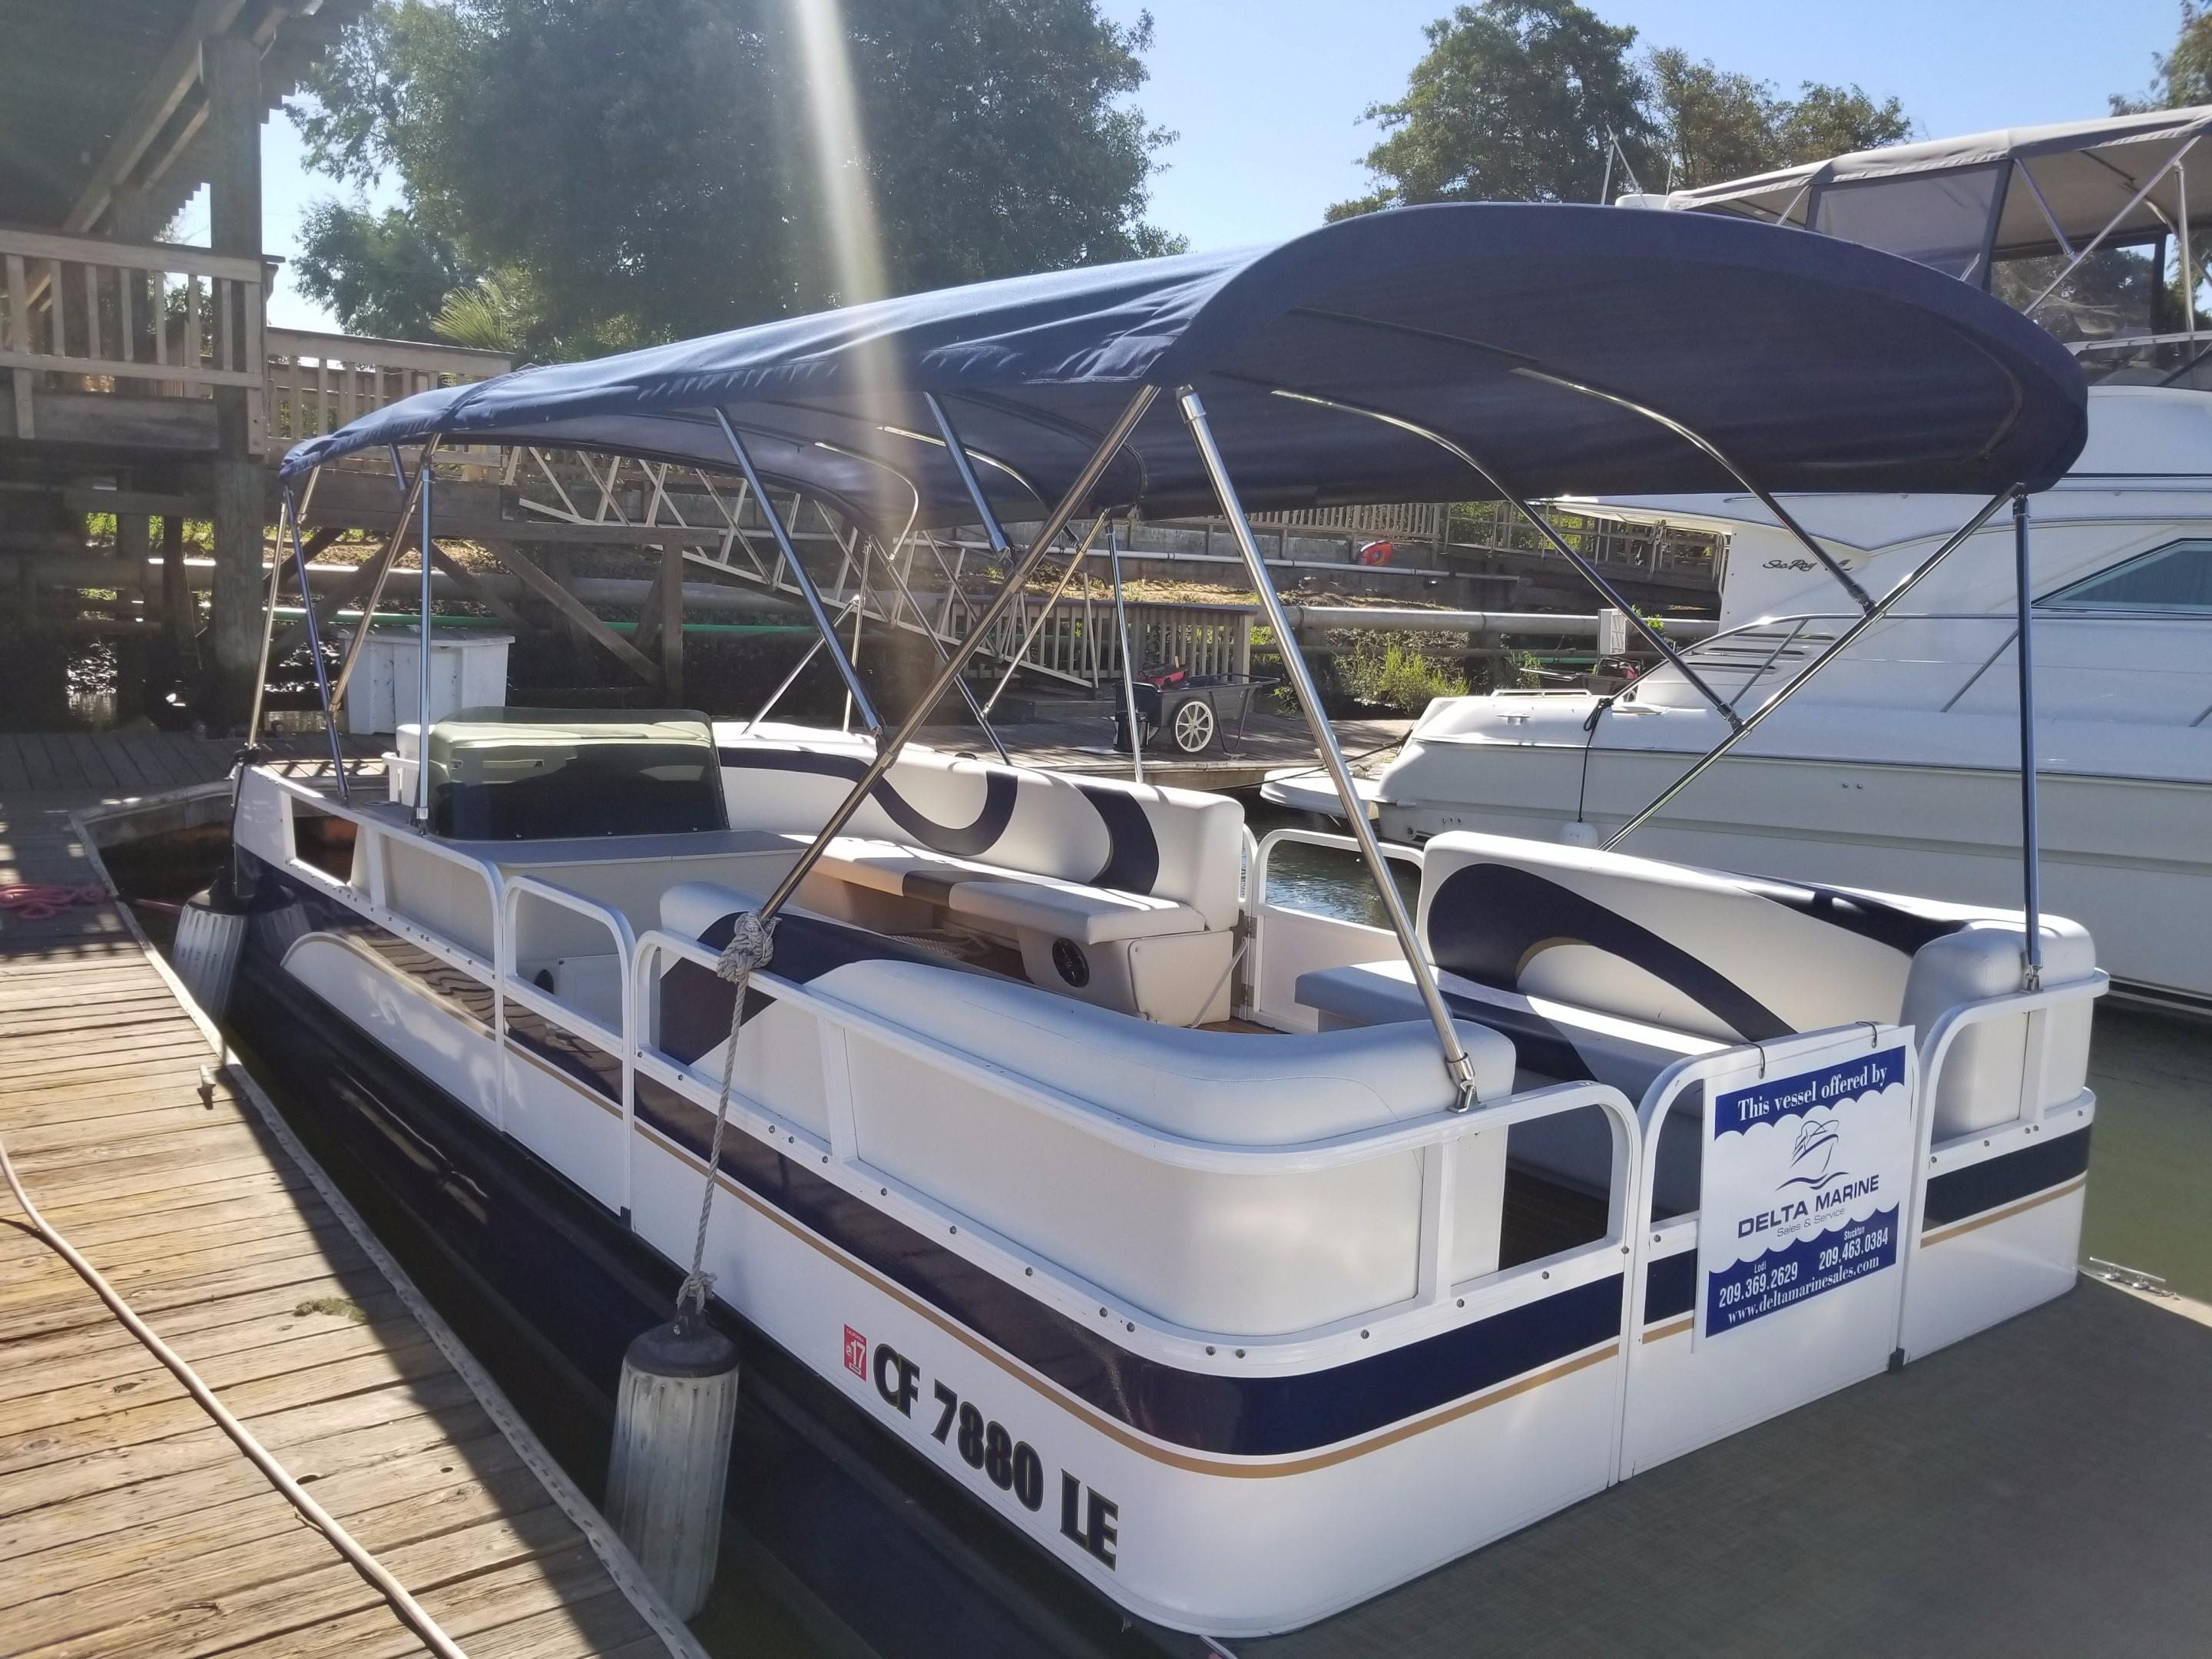 Pontoon new and used boats for sale in california for Fish and ski boats for sale craigslist